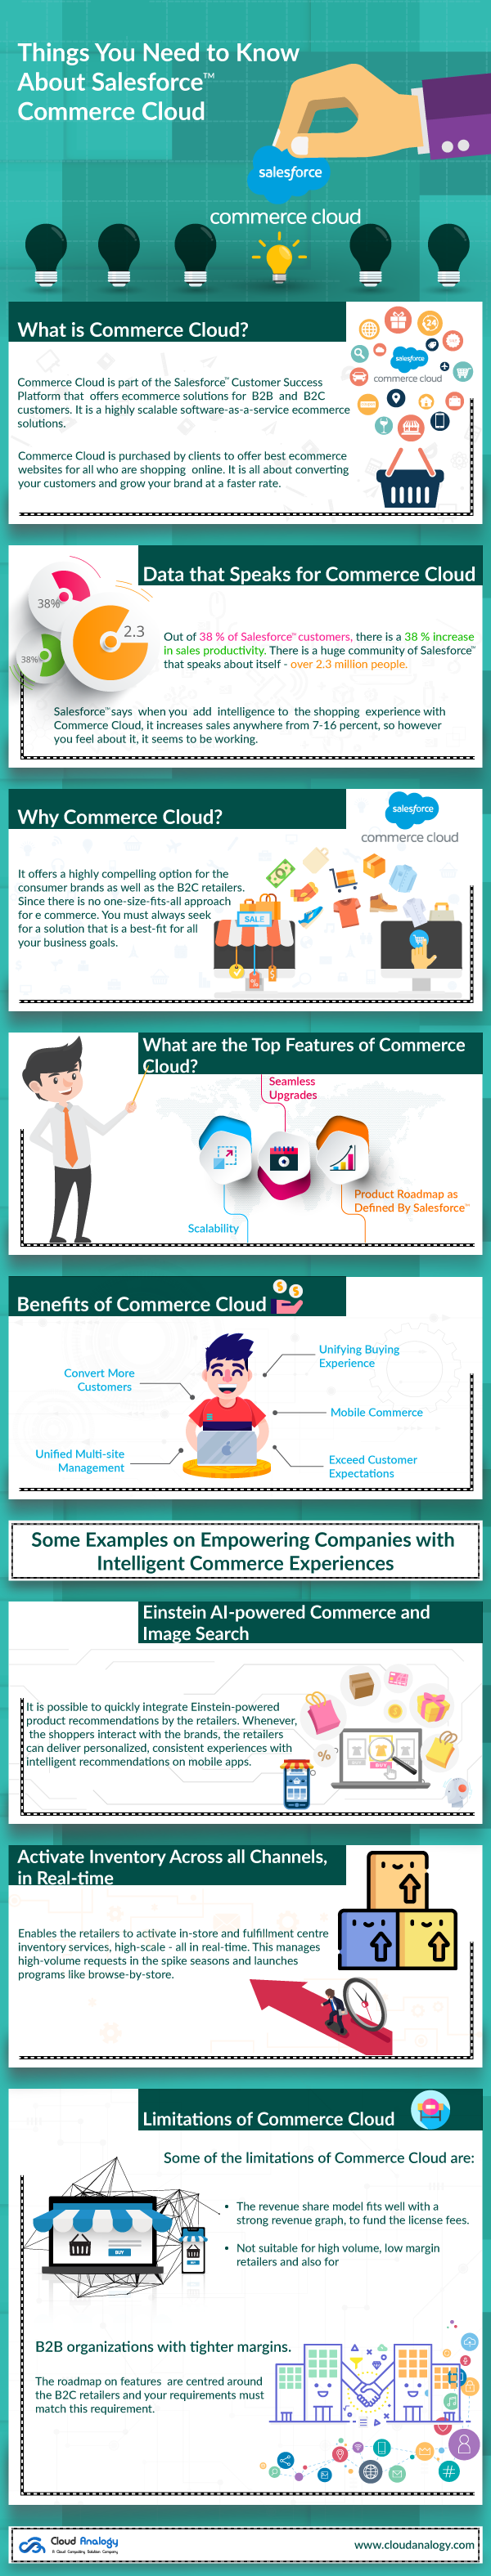 Things you need to know about Salesforce Commerce Cloud